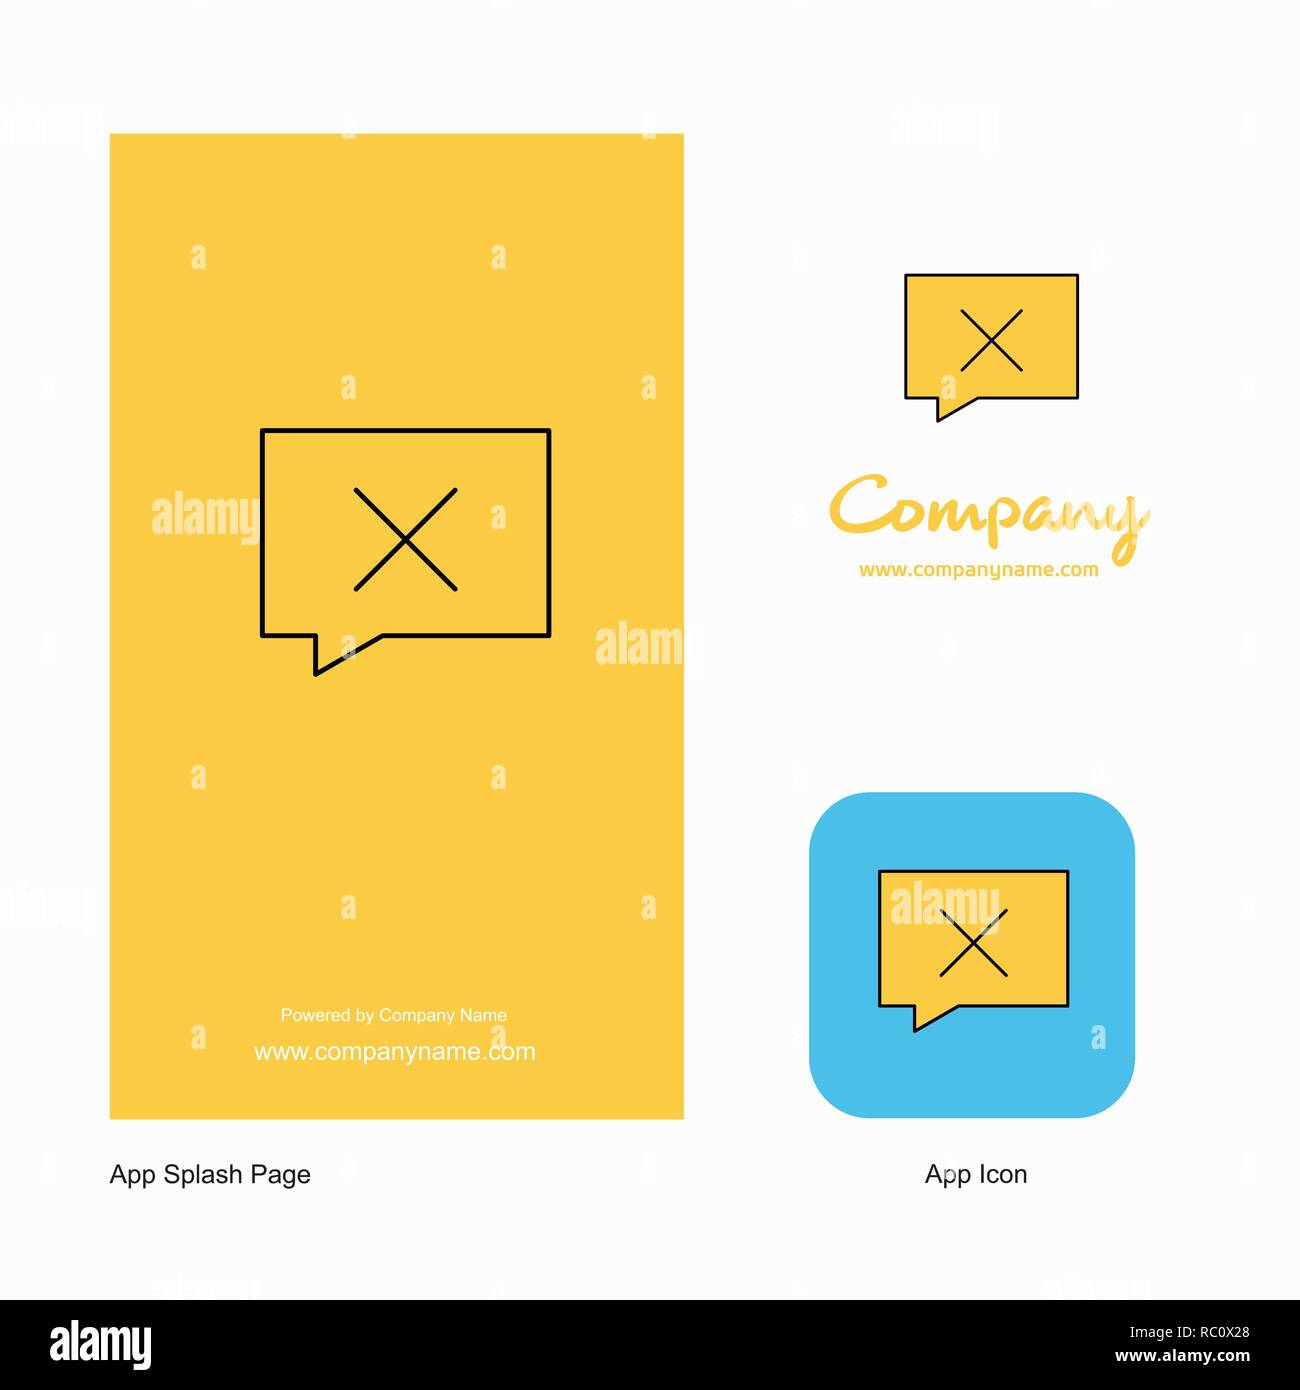 Message not sent Company Logo App Icon and Splash Page Design. Creative Business App Design Elements - Stock Image